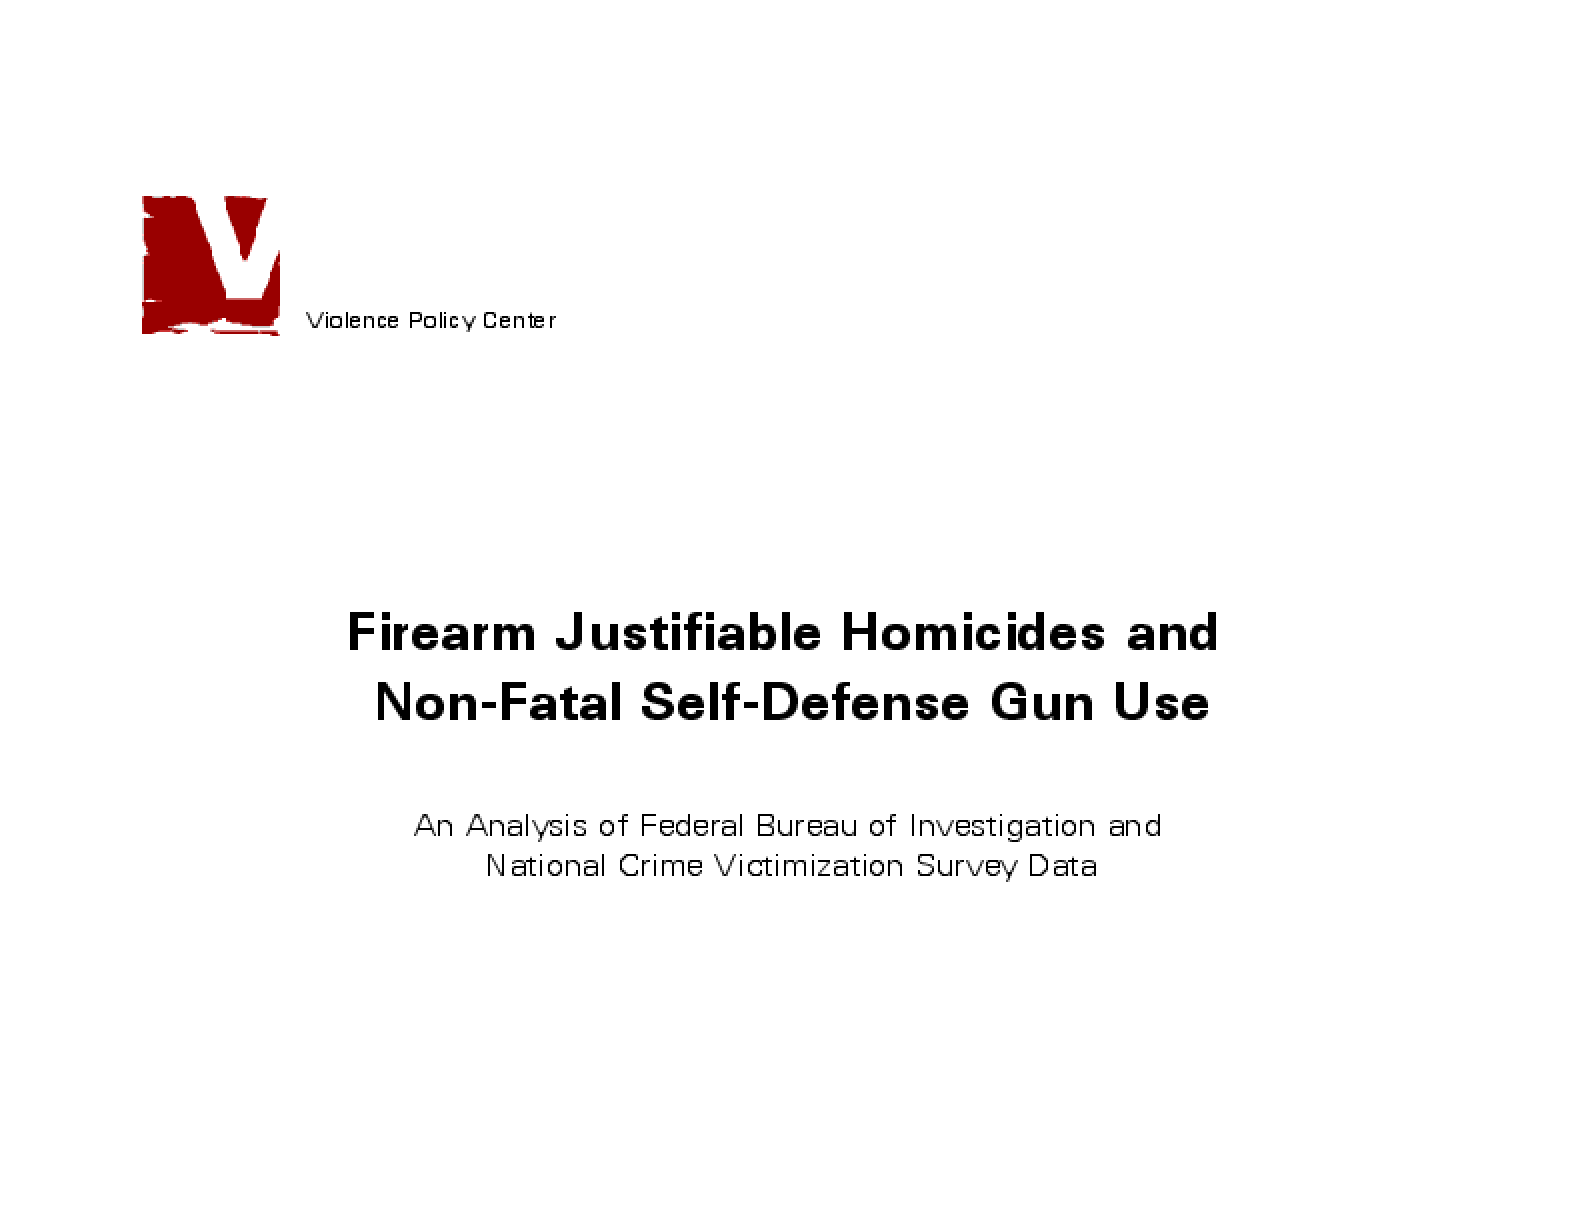 Firearm Justifiable Homicides and Non-Fatal Self-Defense Gun Use: An Analysis of Federal Bureau of Investigation and National Crime Victimization Survey Data